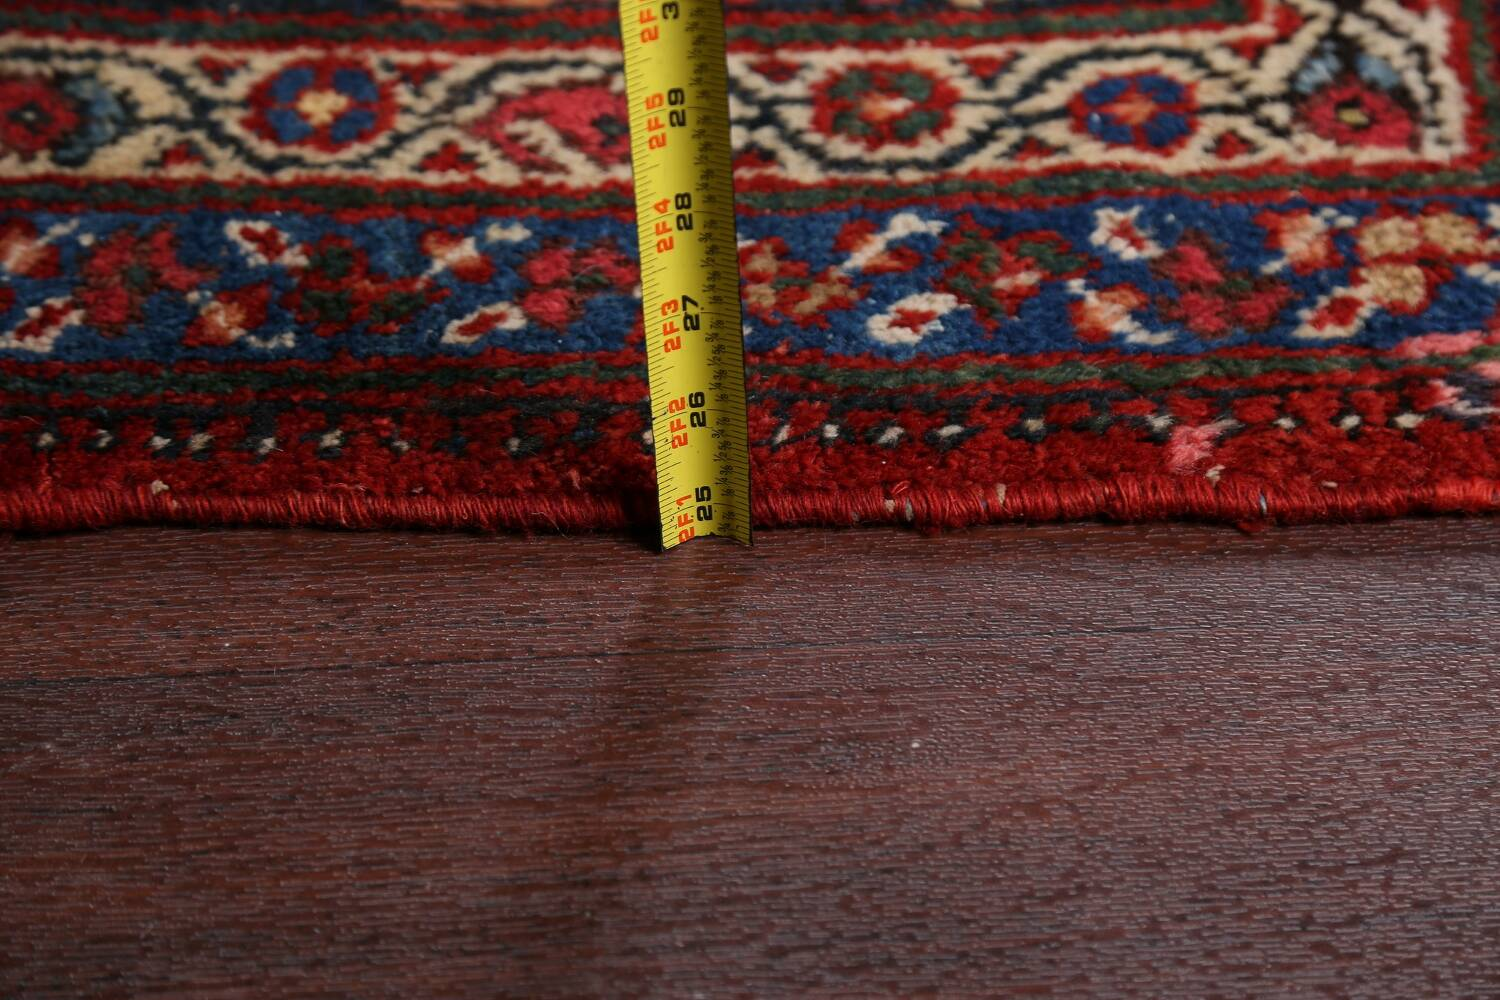 Antique 100% Vegetable Dye Sultanabad Persian Area Rug 12x17 image 22